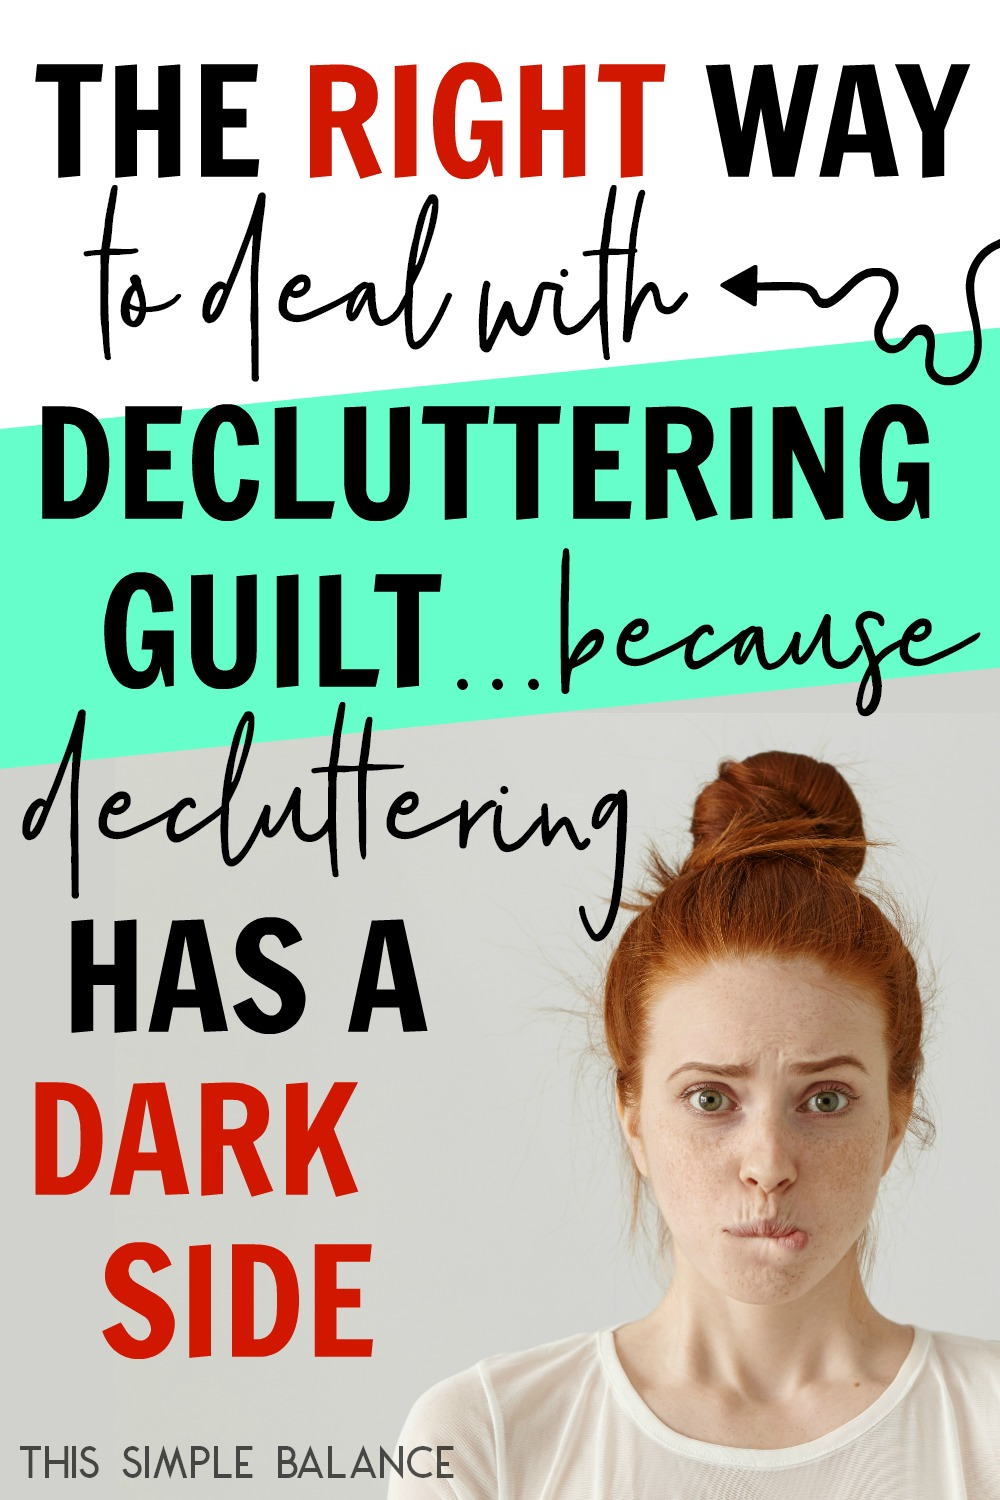 Decluttering has a dark side, and that dark side can produce some serious decluttering guilt. Here are the two best ways to deal with that guilt.